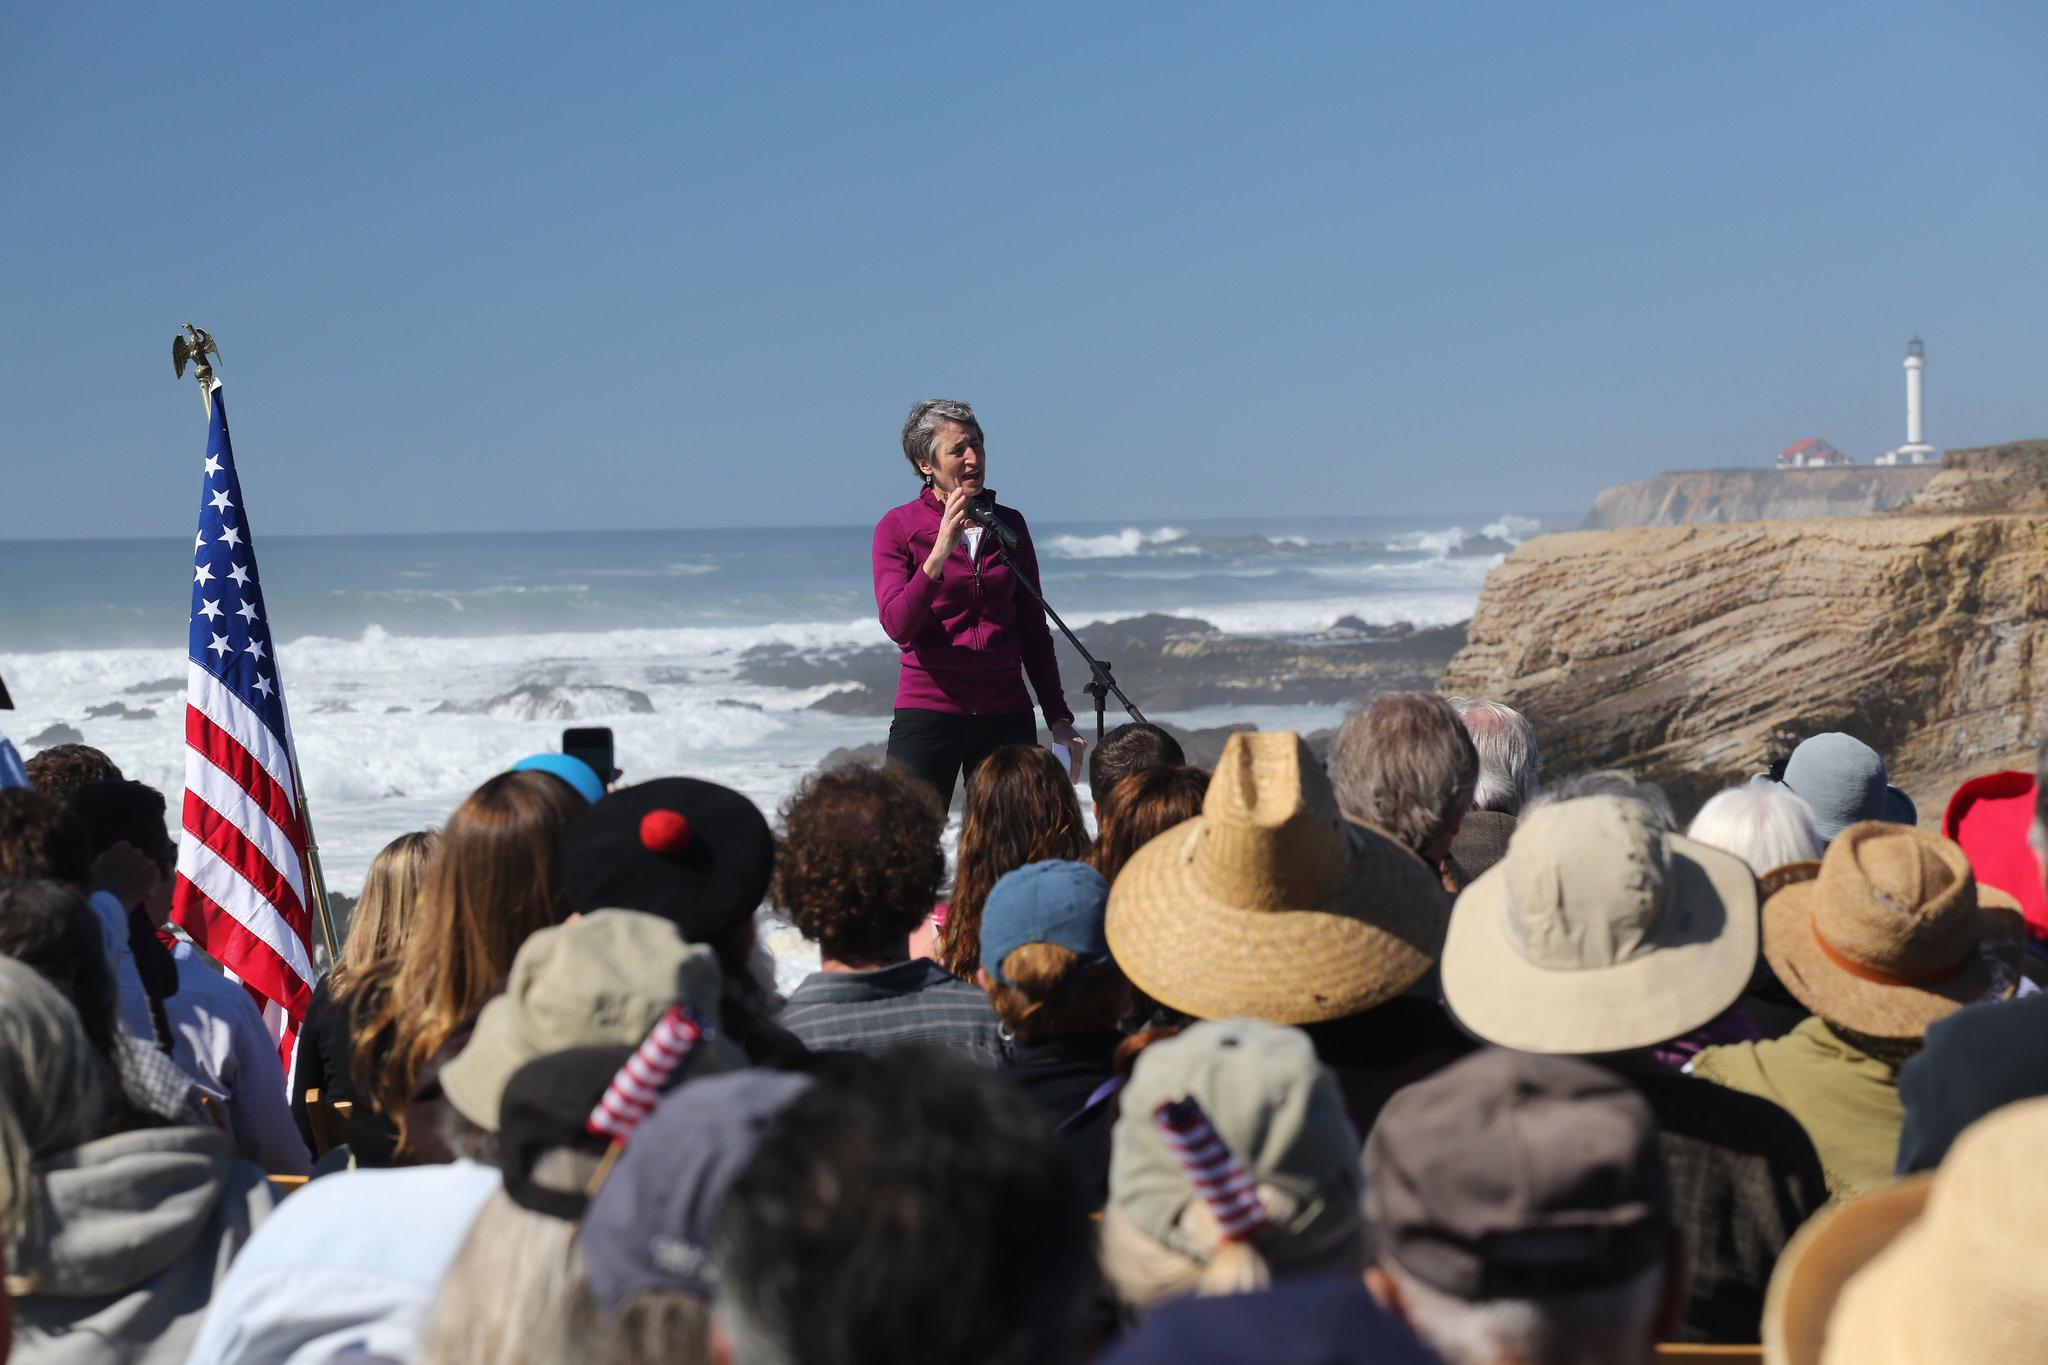 Secretary Jewell speaking on an ocean shore